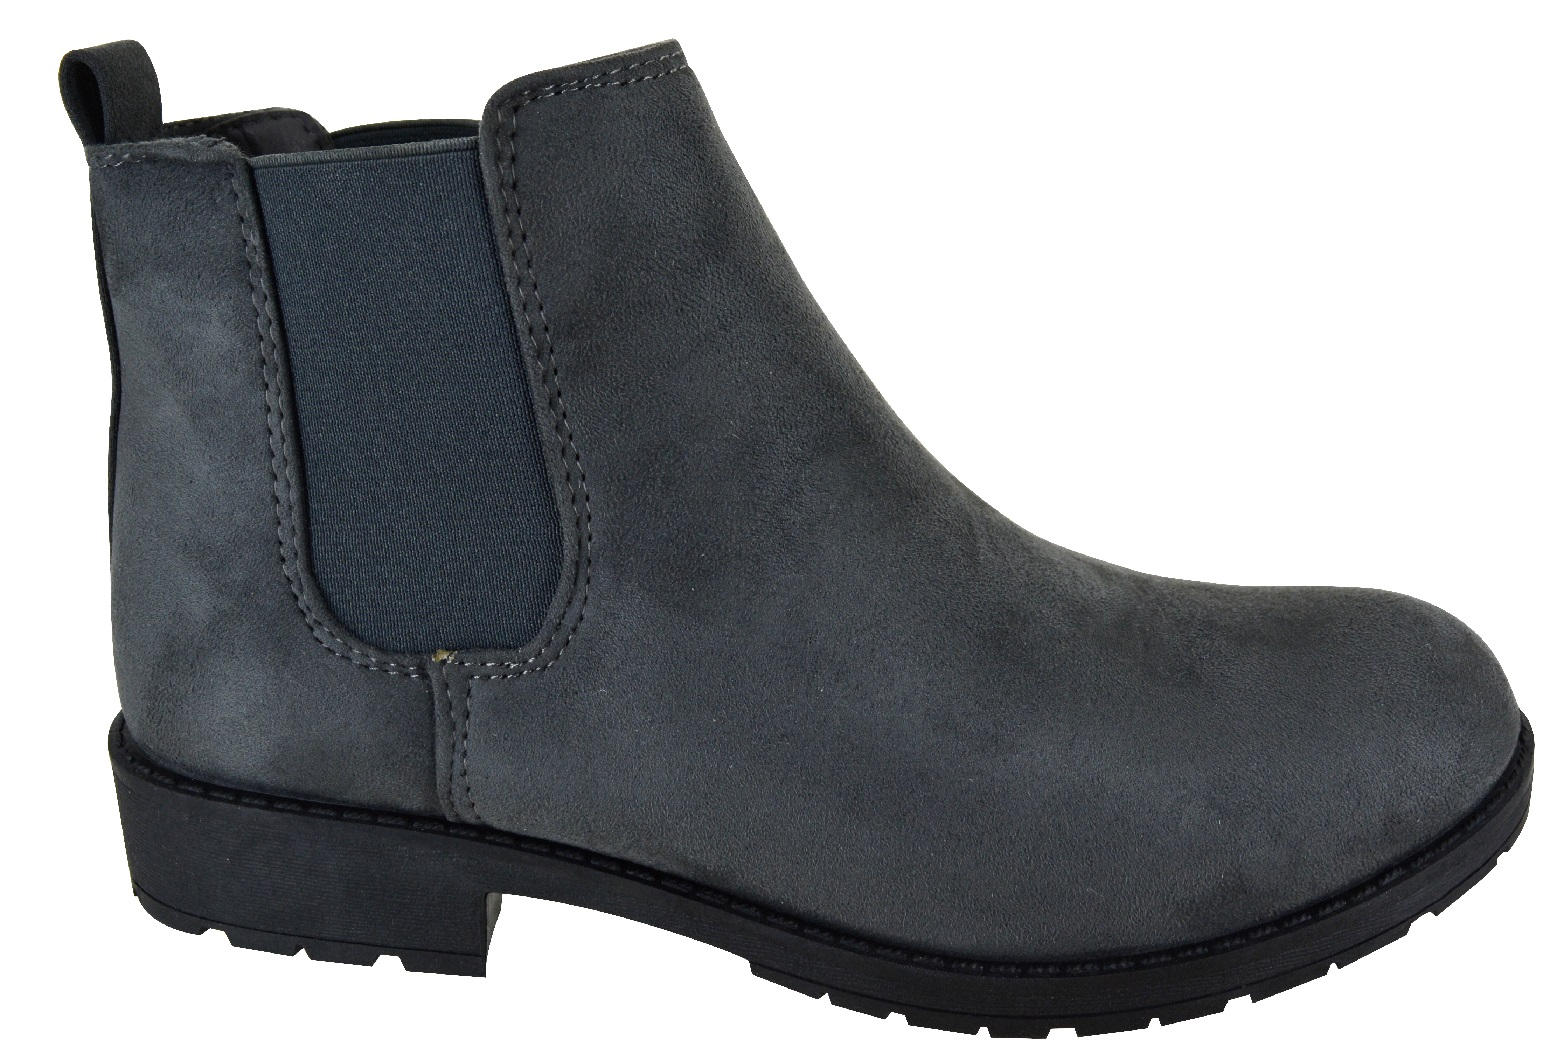 LADIES-WOMENS-CHELSEA-DEALER-SLIP-ON-FLAT-ANKLE-CAUSAL-LOW-HEEL-SHOES-BOOTS-SIZE thumbnail 4